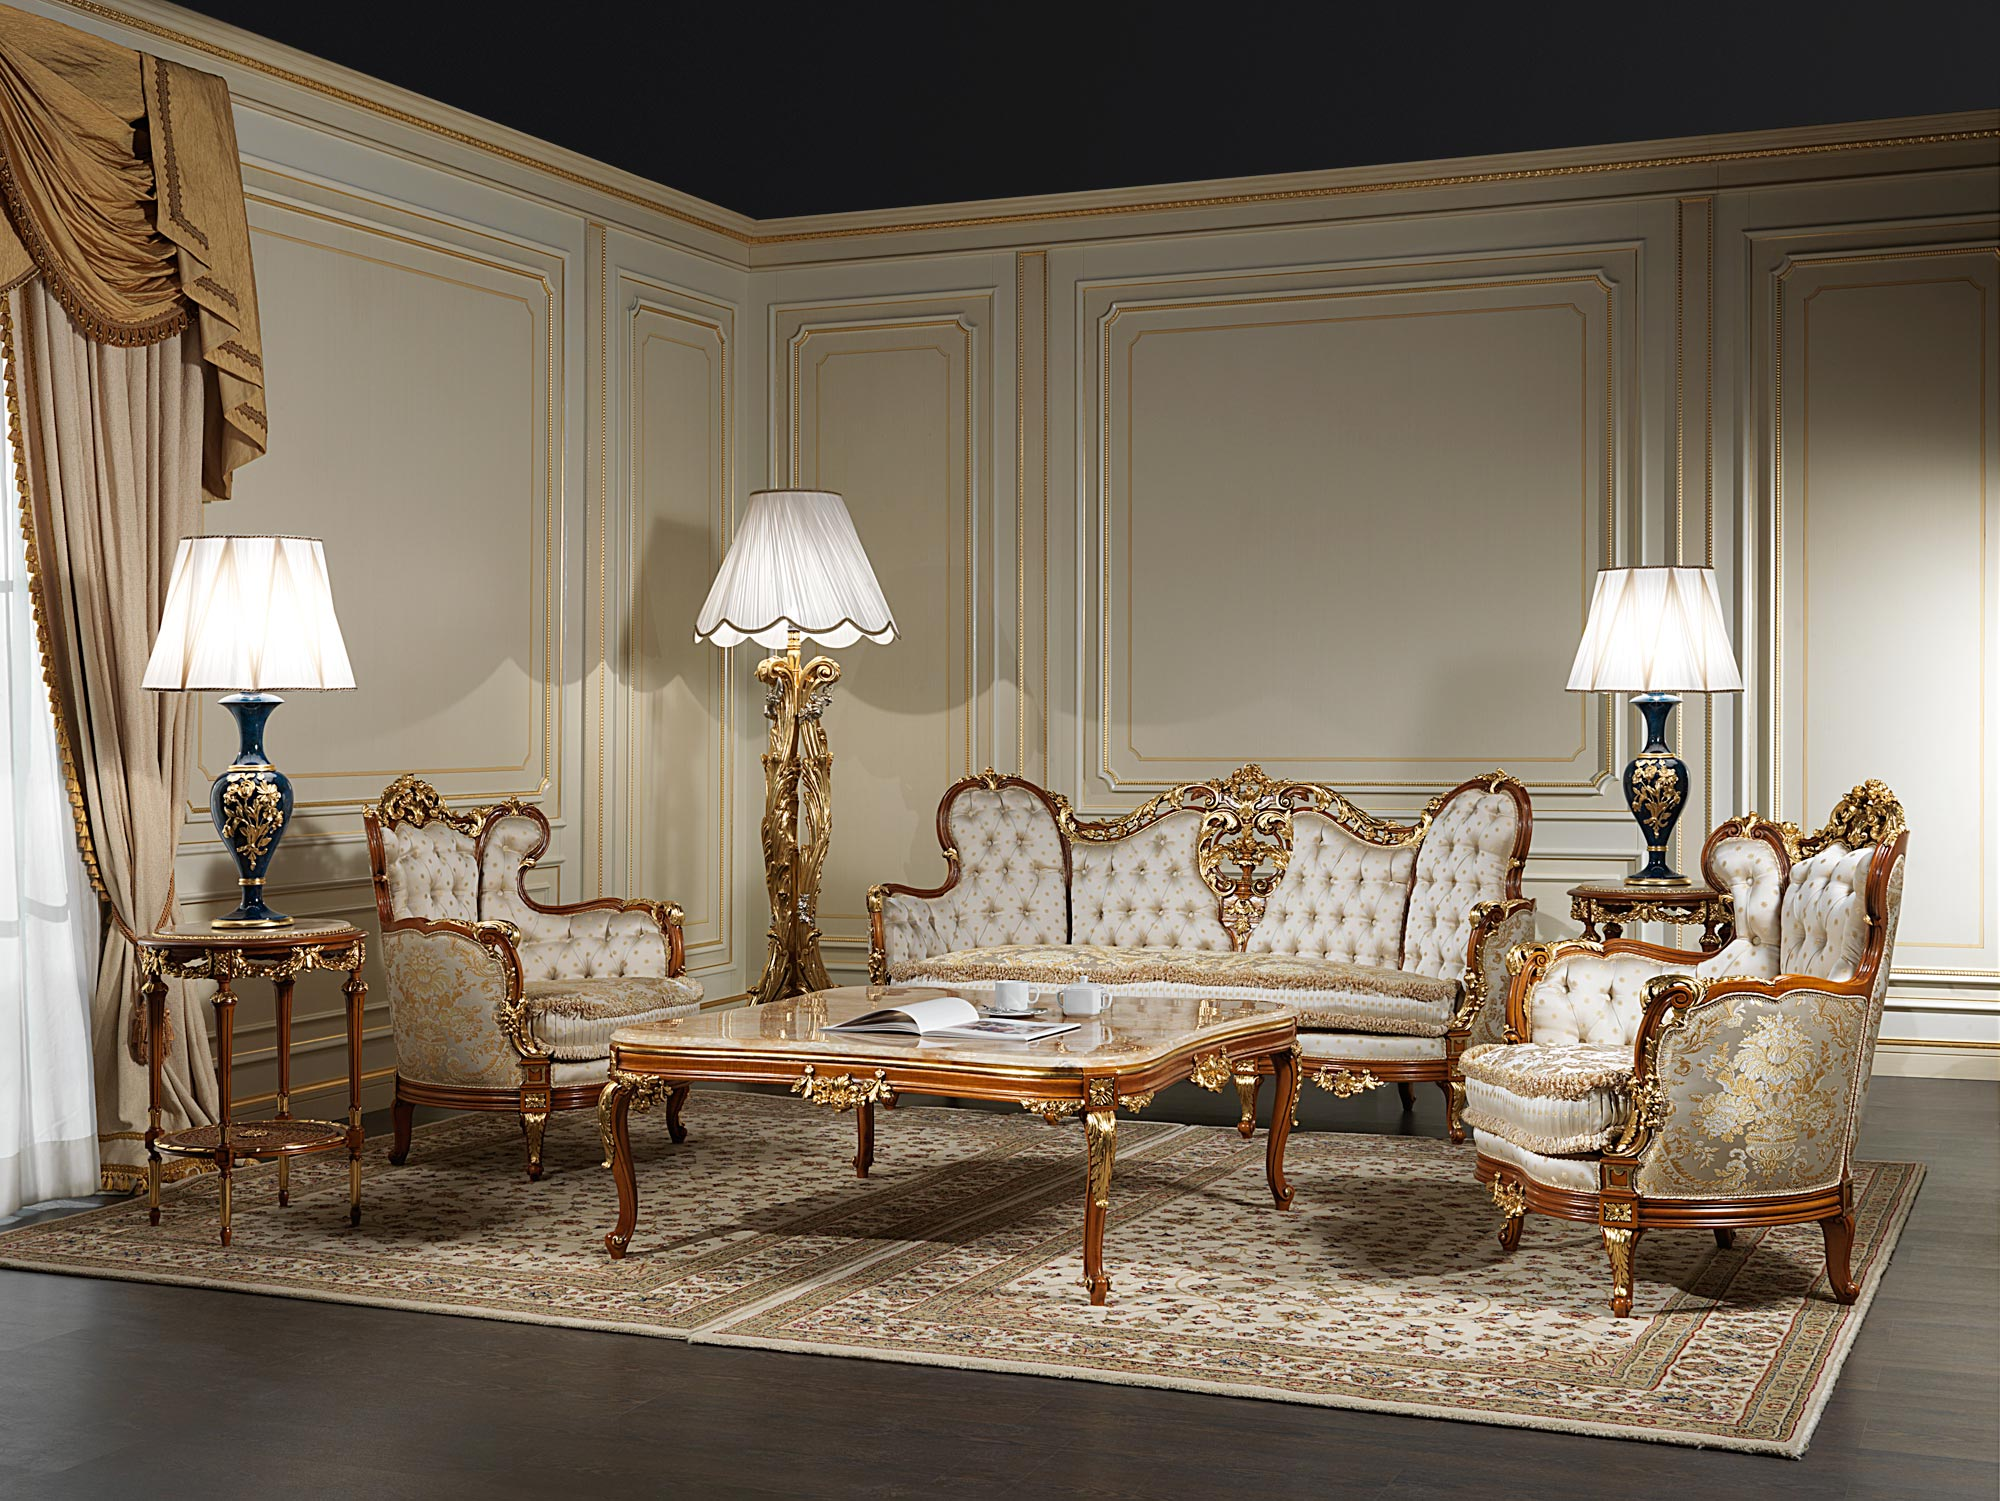 Living room xix made in italy vimercati classic furniture for Classic furniture